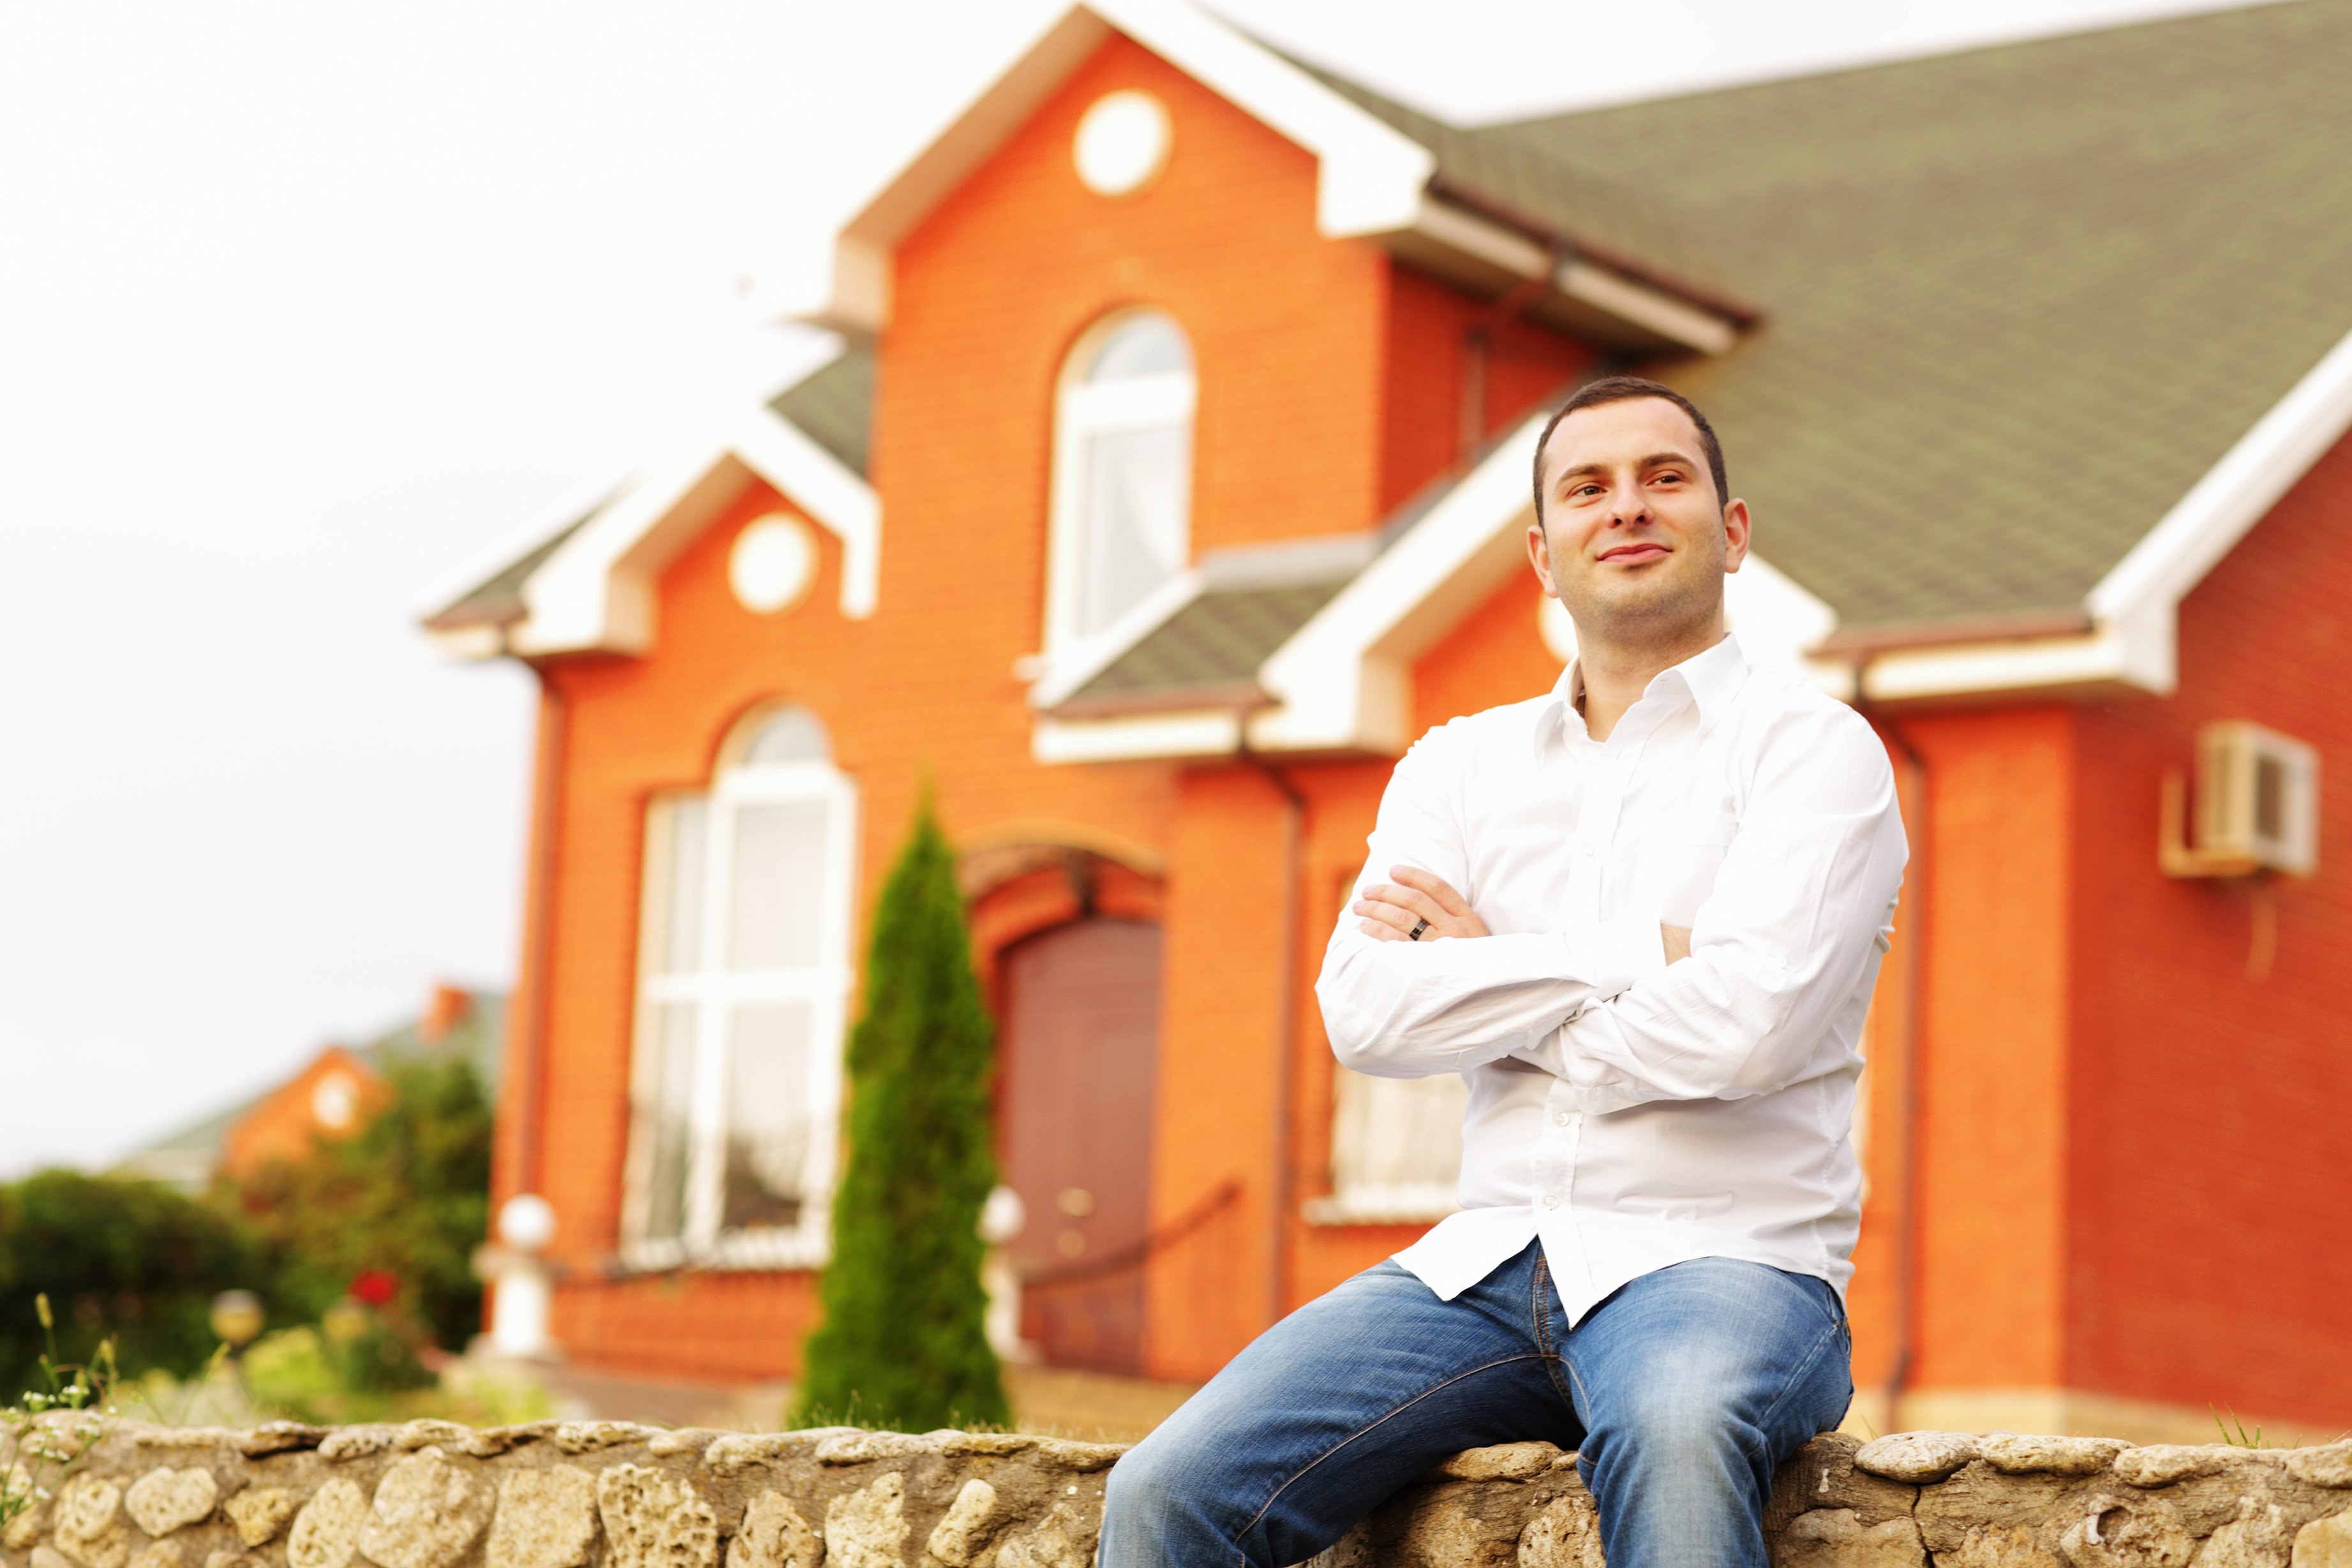 Happy man sitting in front of an orange-bricked house.|Source: Shutterstock